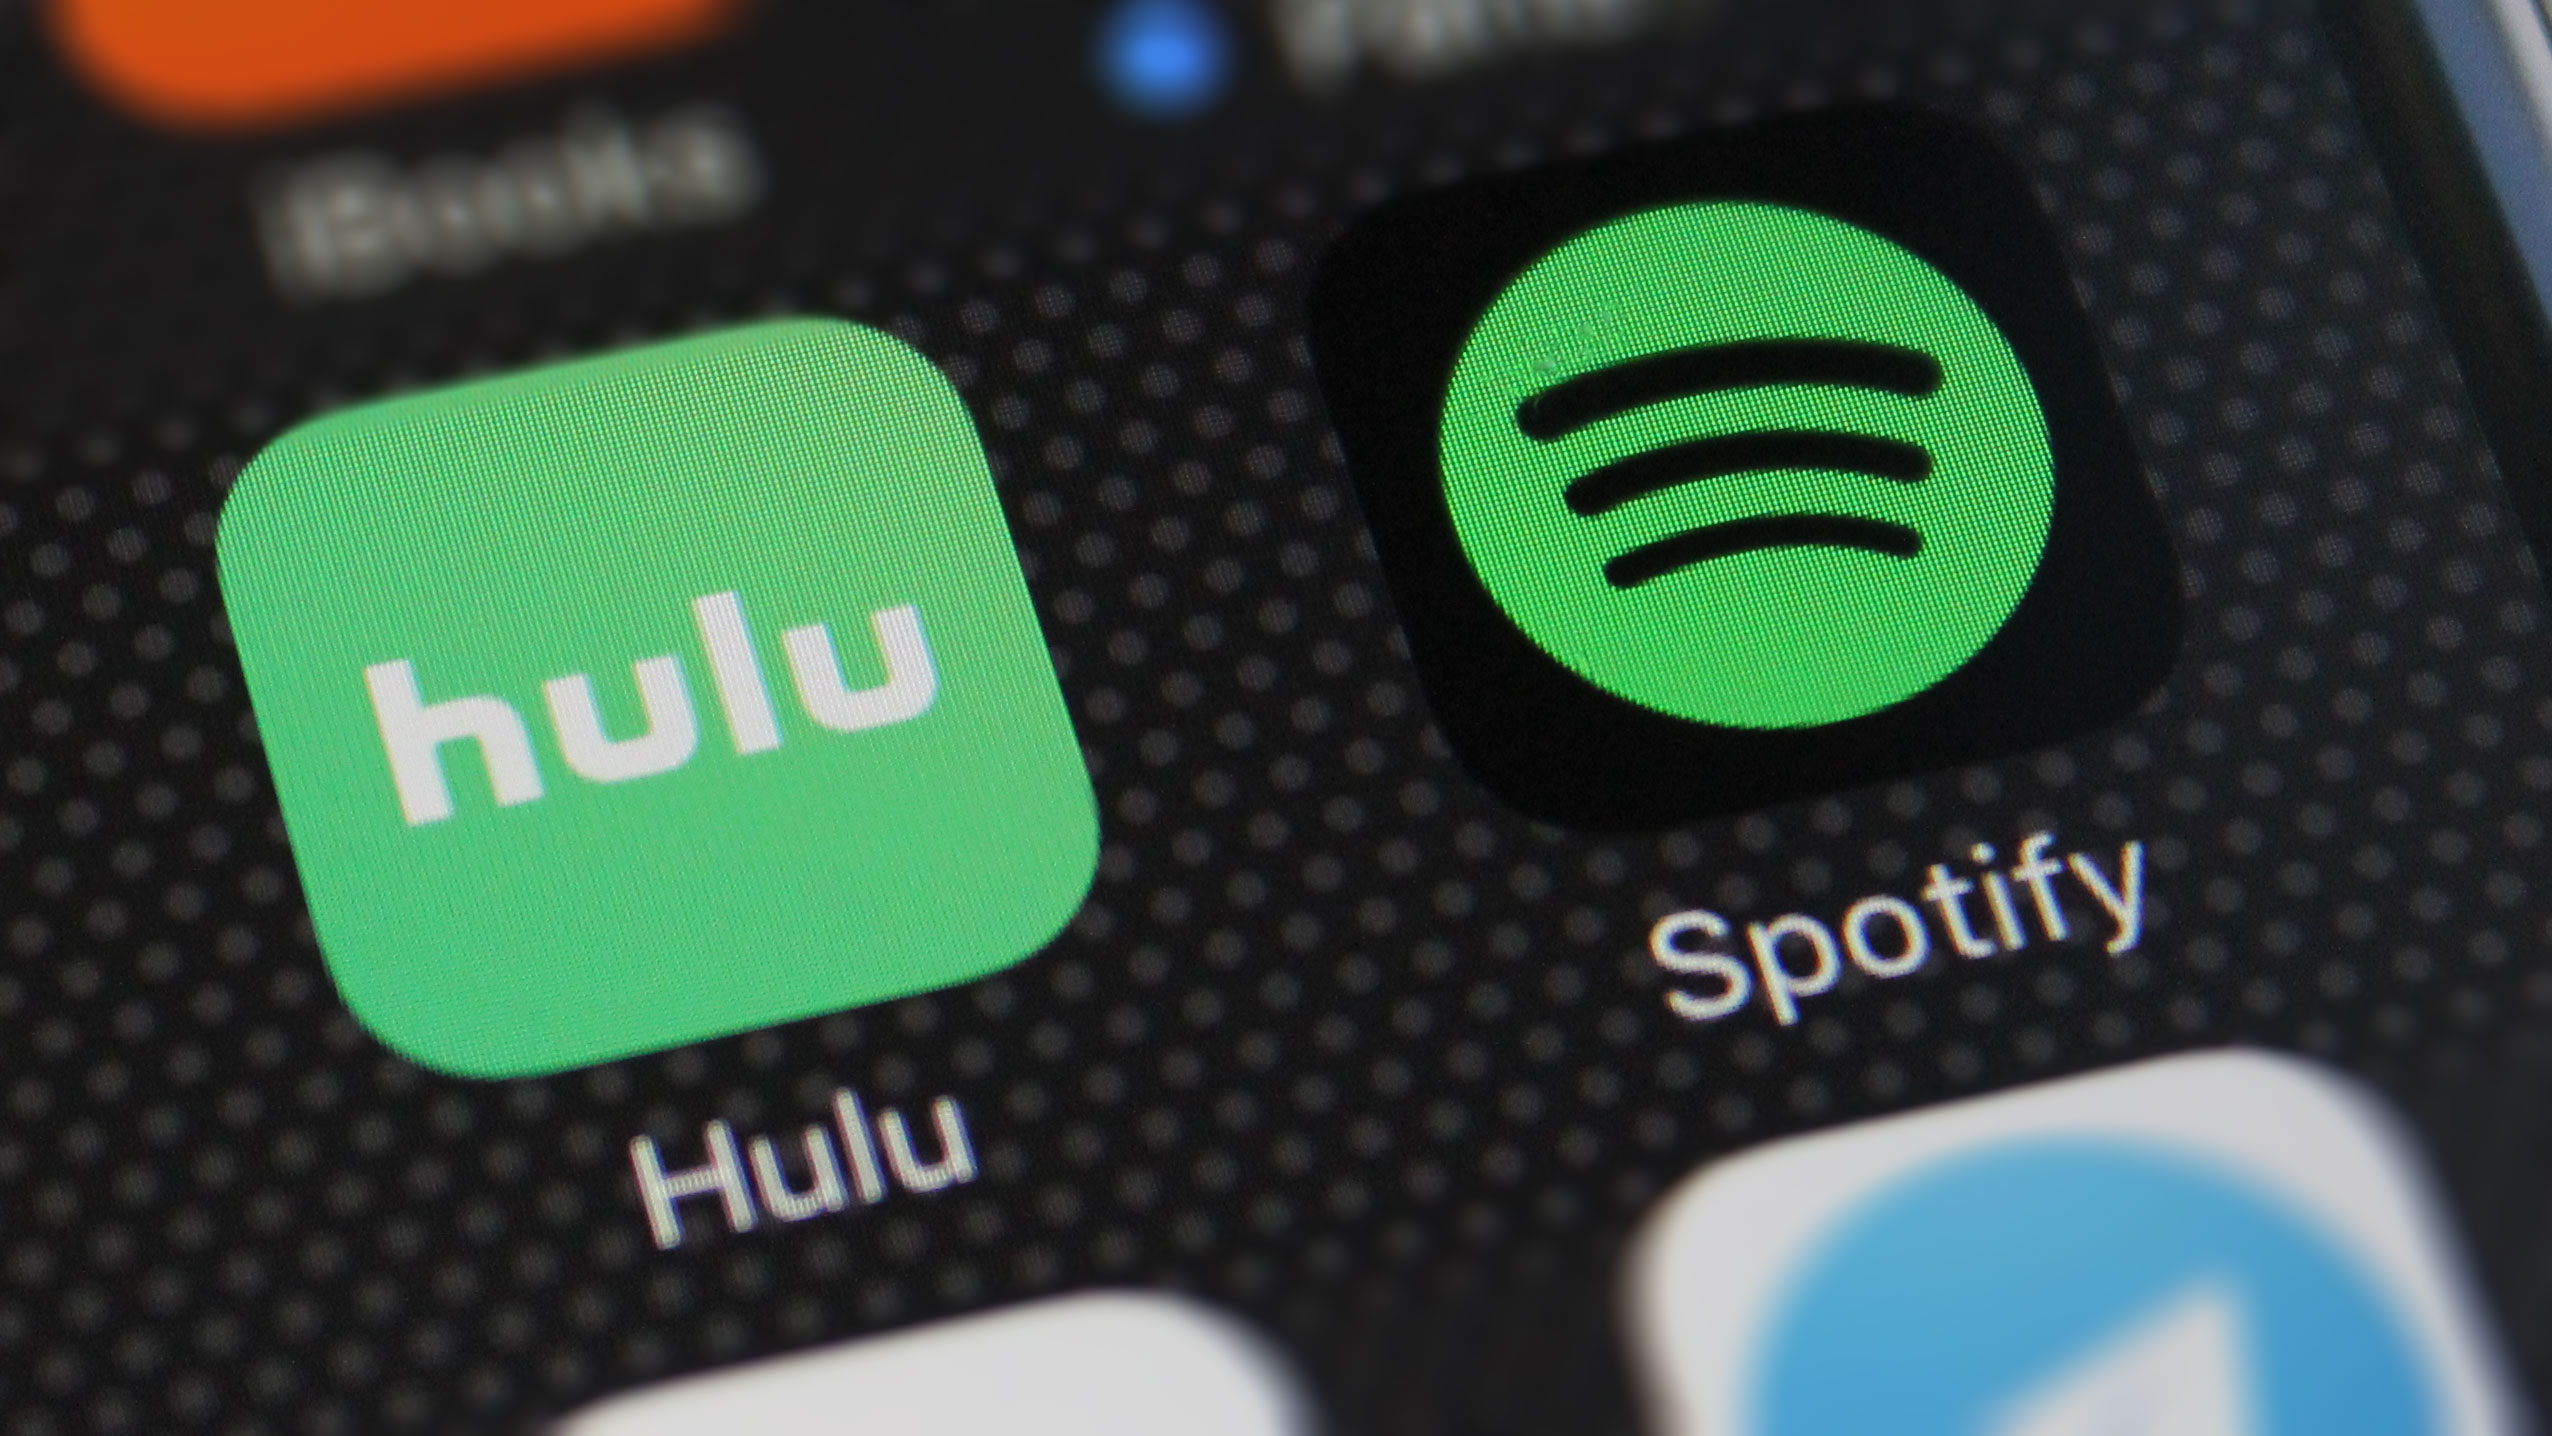 how to use student for spotify